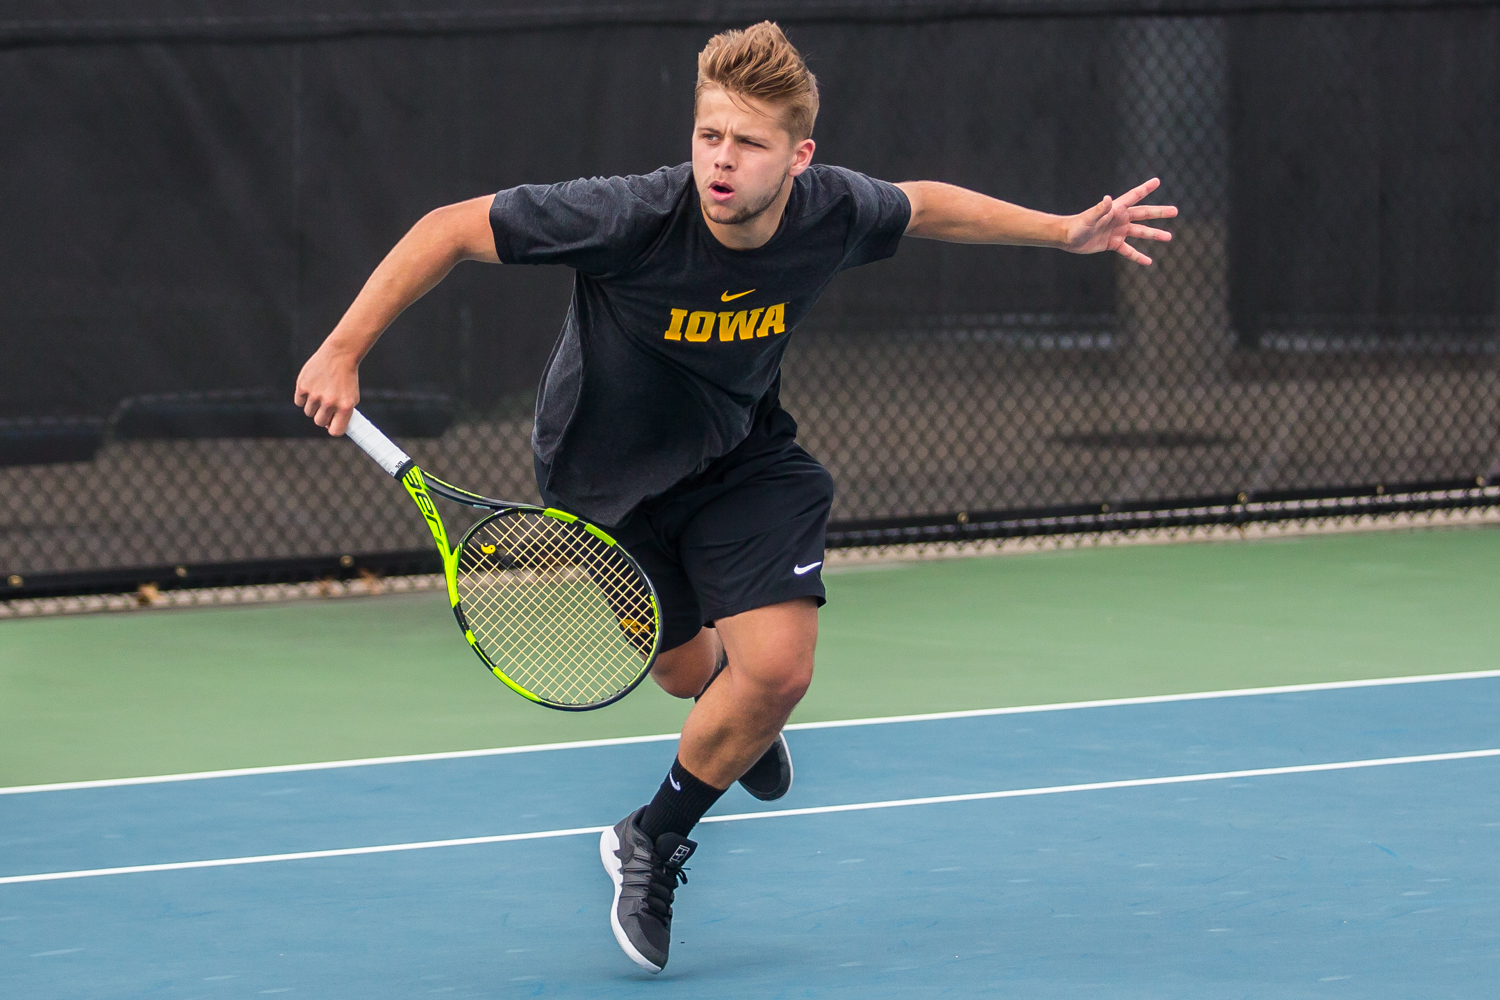 Iowa%27s+Will+Davies+hits+a+backhand+during+a+men%27s+tennis+match+between+Iowa+and+Ohio+State+at+the+HTRC+on+Sunday%2C+April+7%2C+2019.+The+Buckeyes+defeated+the+Hawkeyes%2C+4-1.